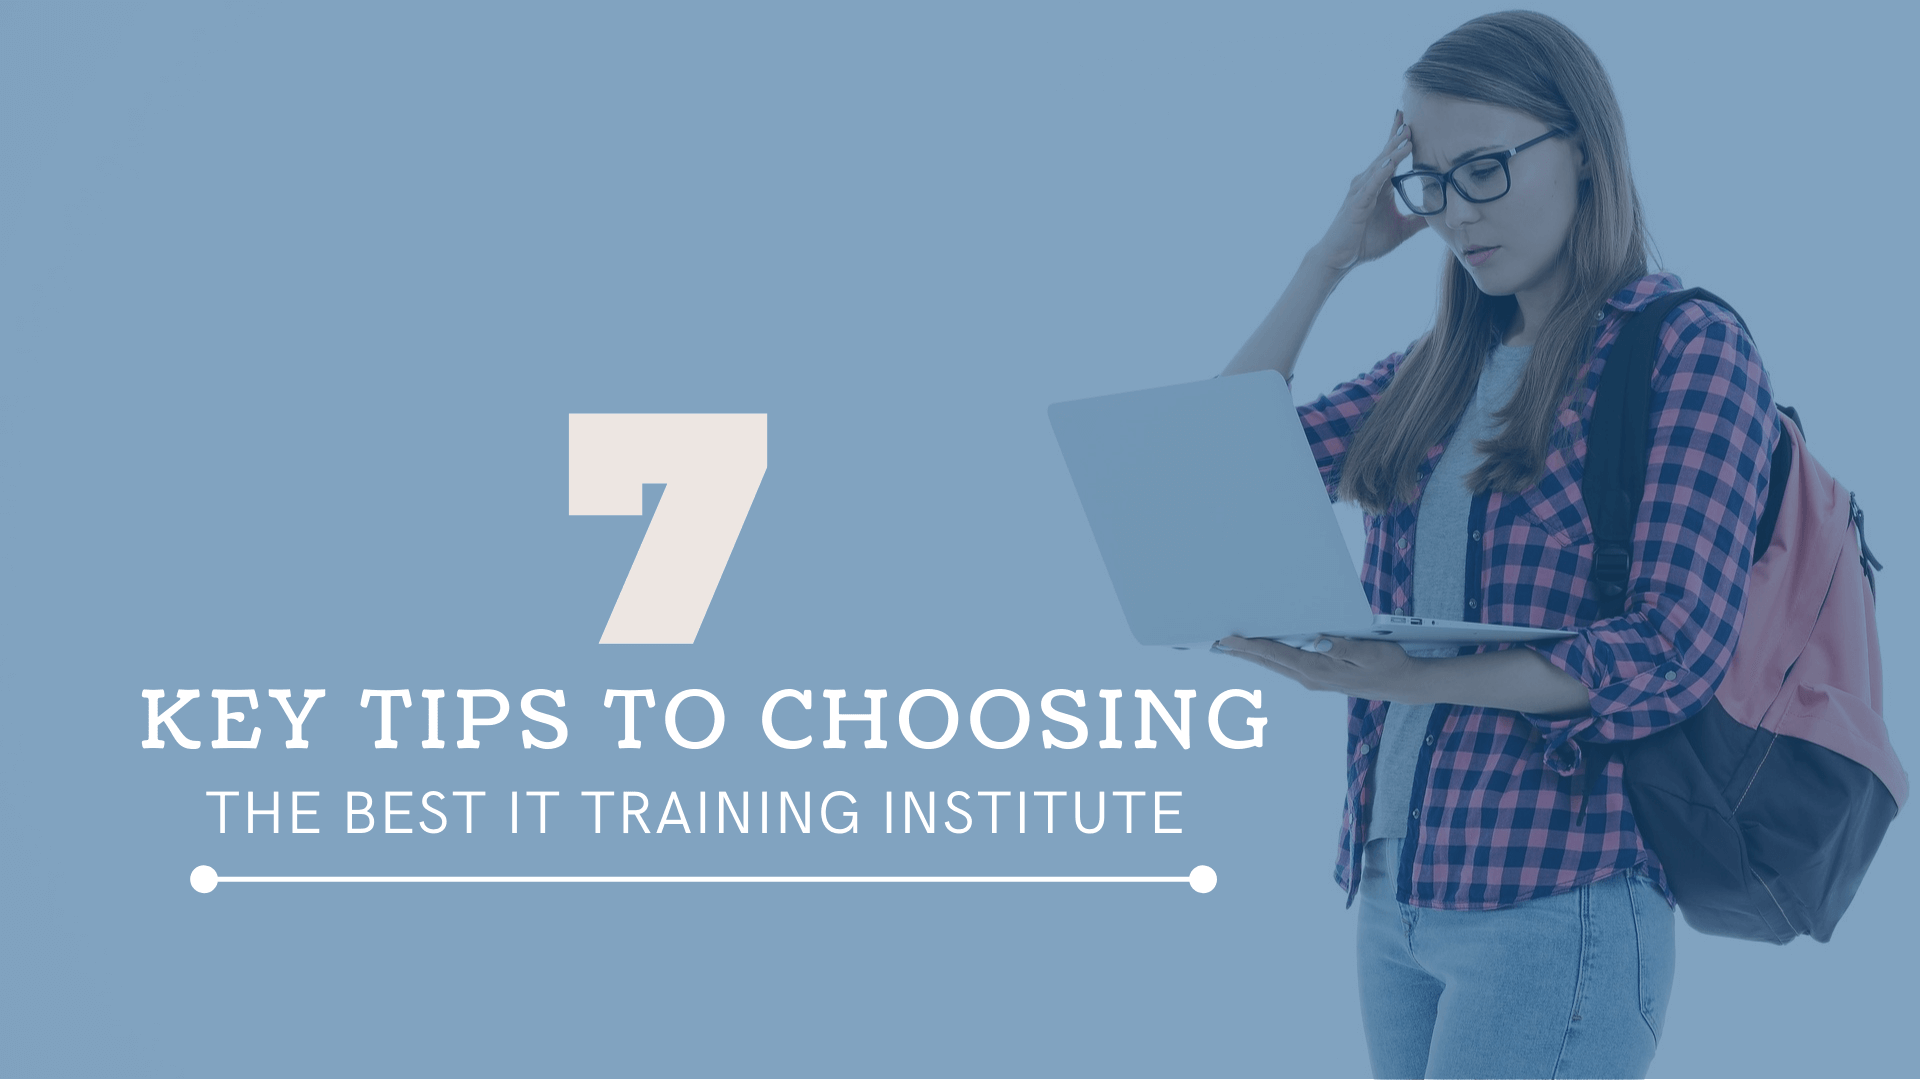 7 Key Tips to Choosing the Best IT Training Institute in 2020